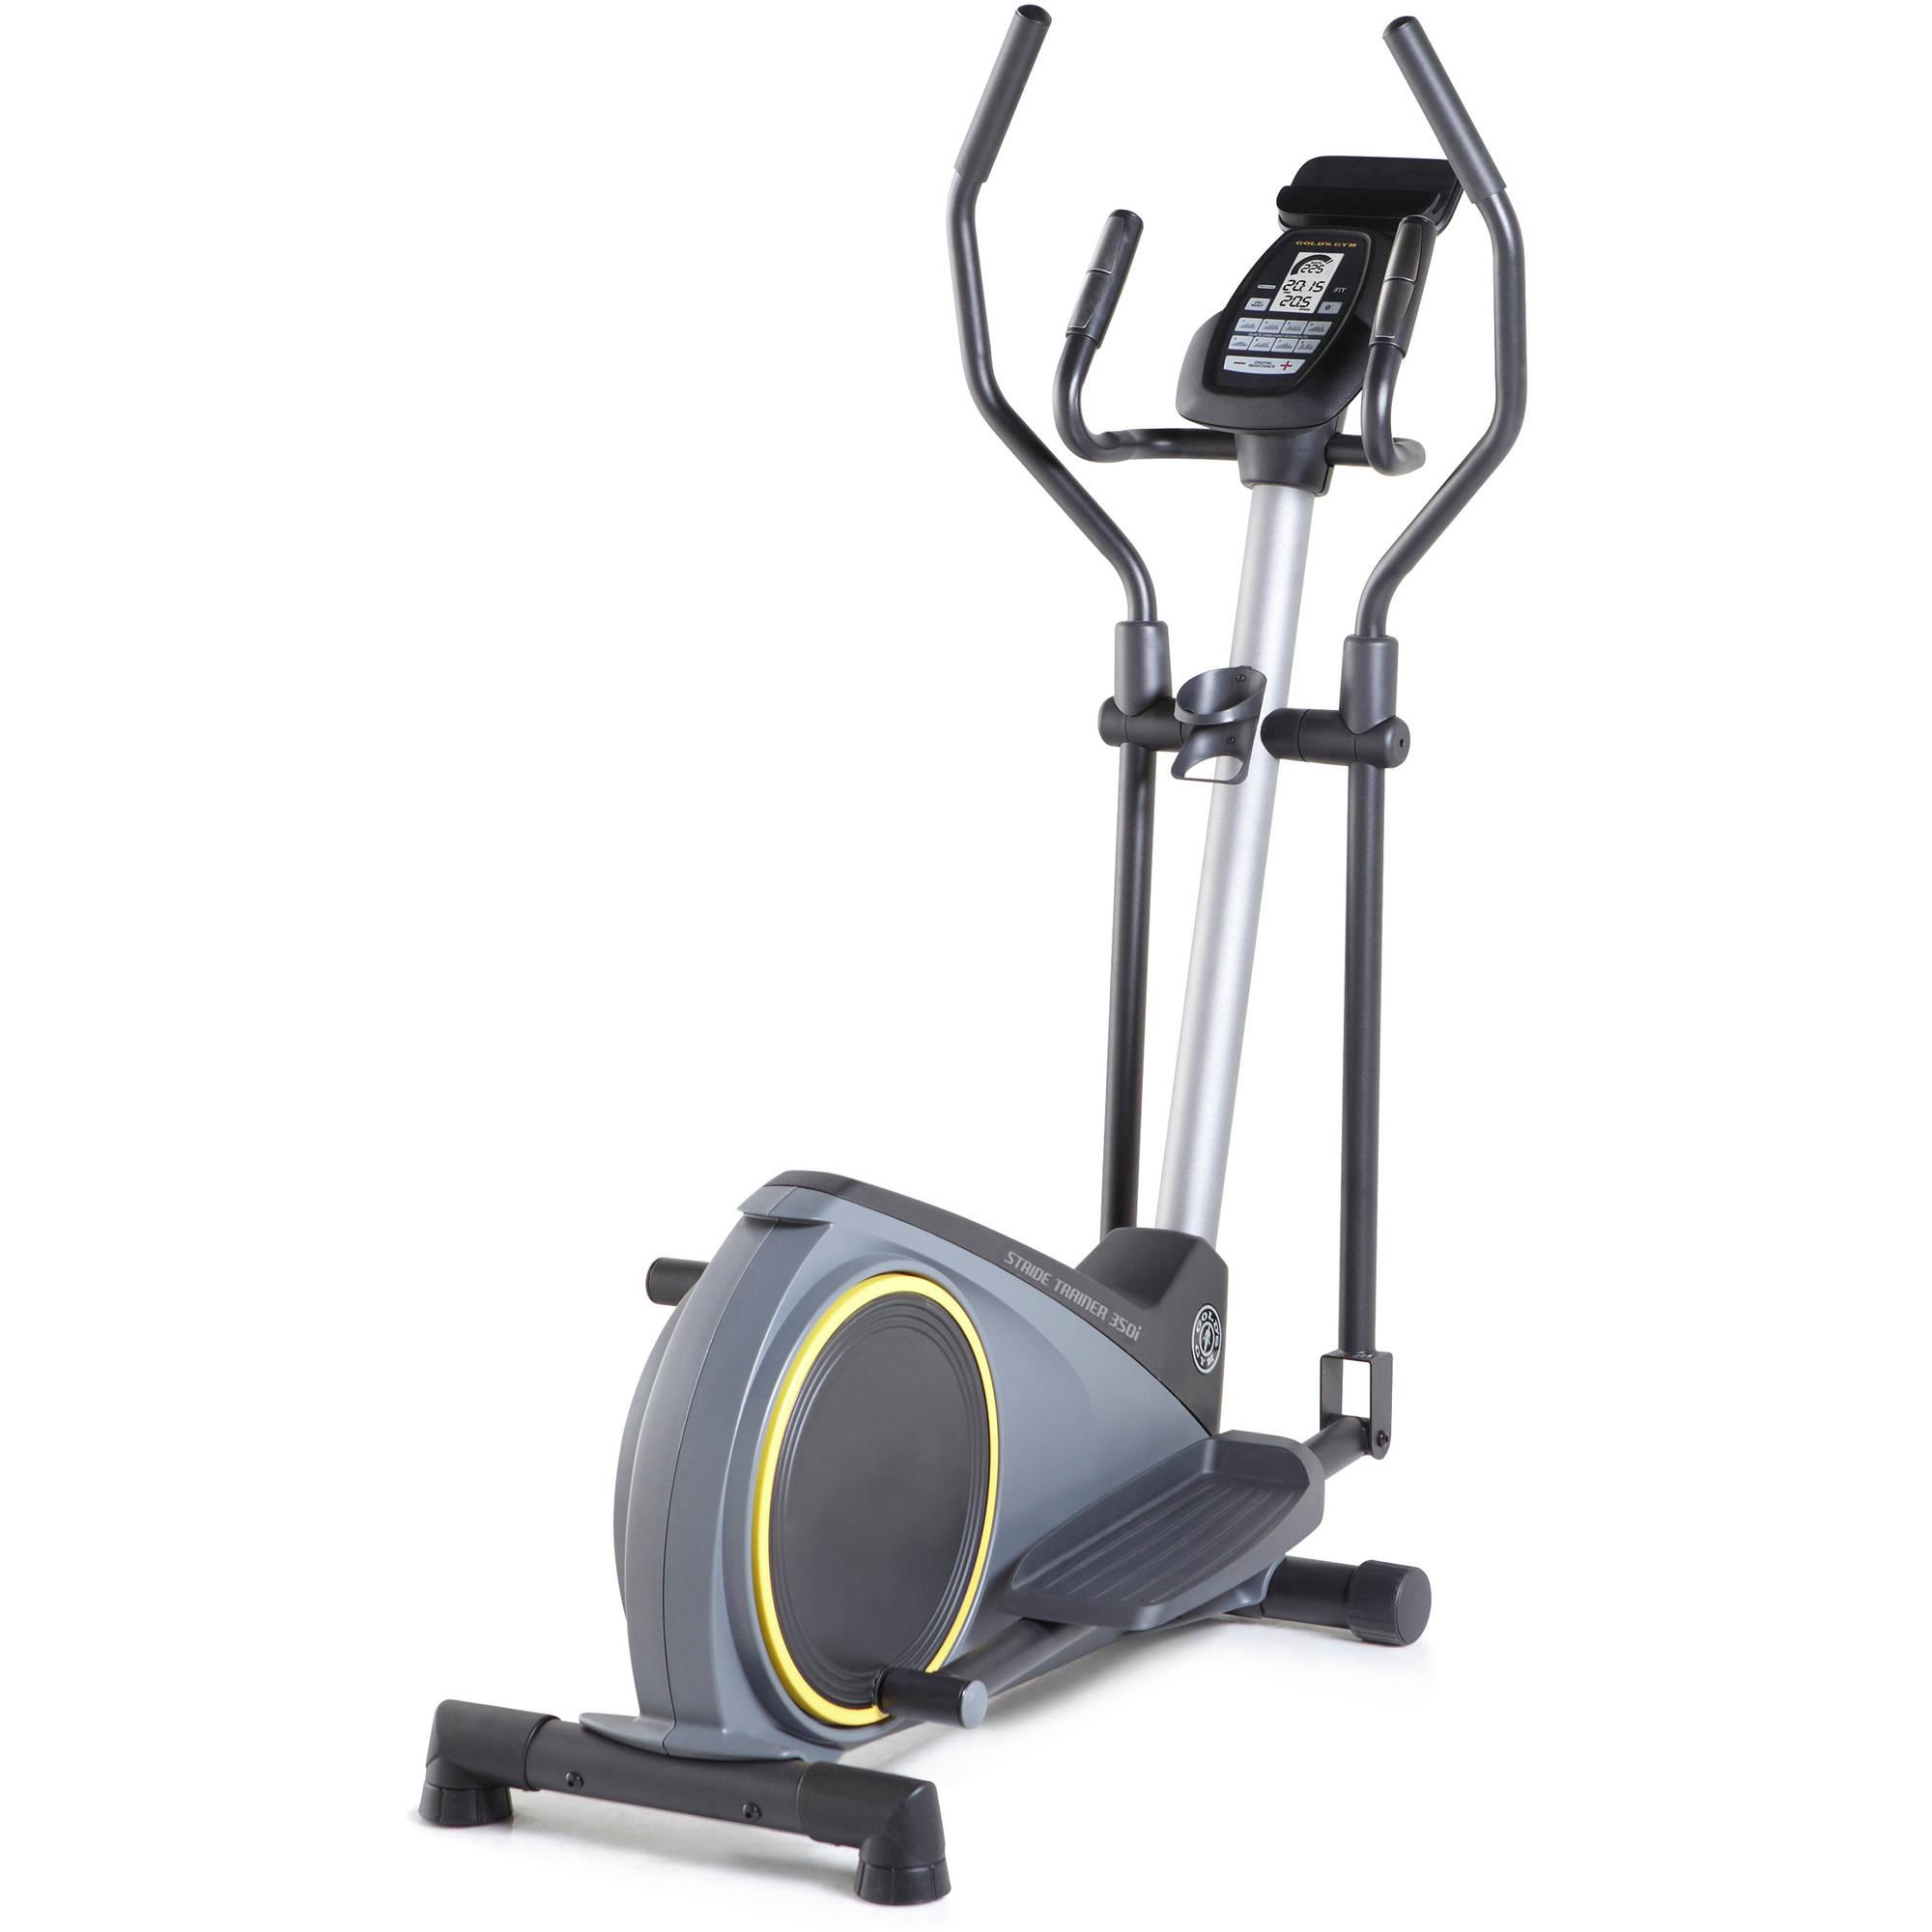 Gold's Gym Stride Trainer 350i Elliptical With IFit